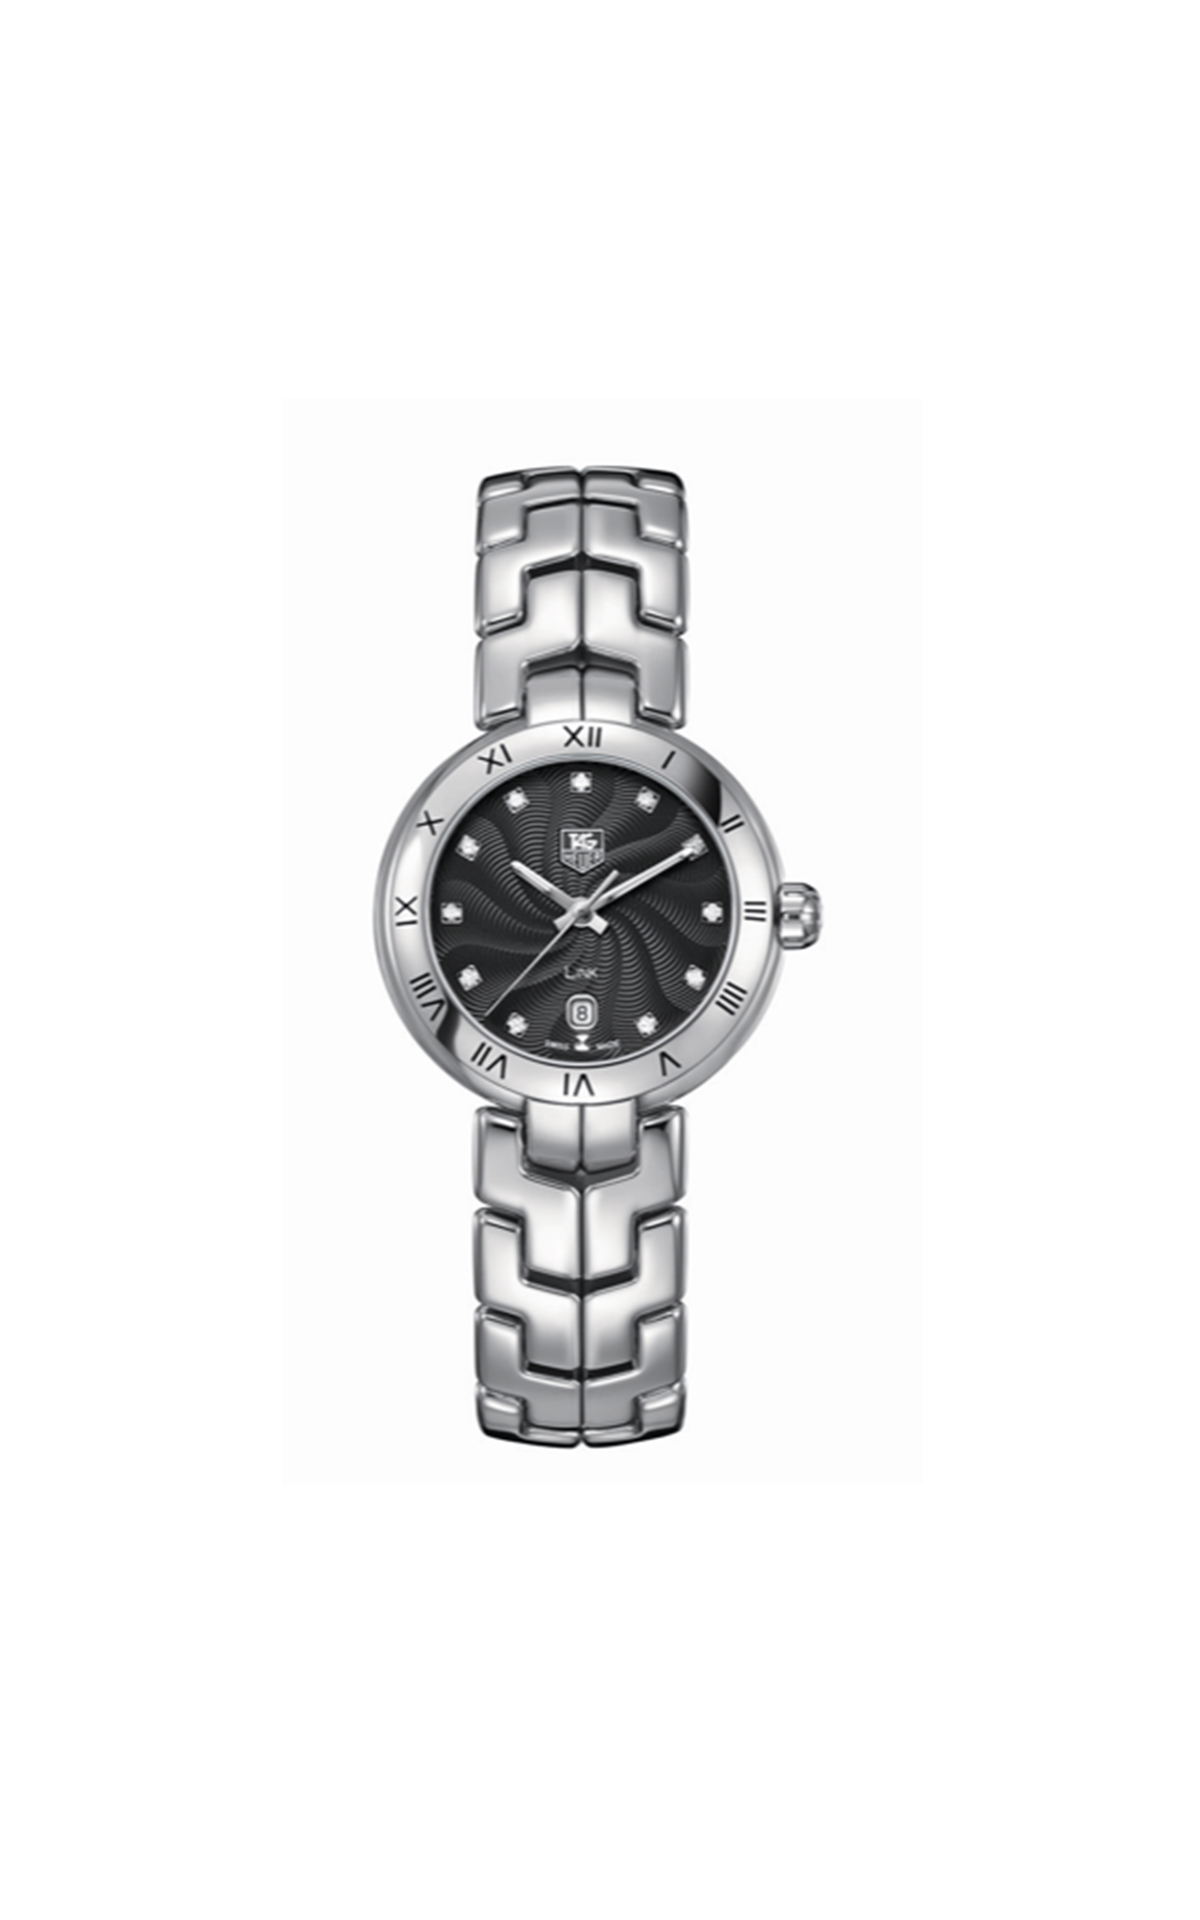 TAG Heuer Women's watch from Bicester Village